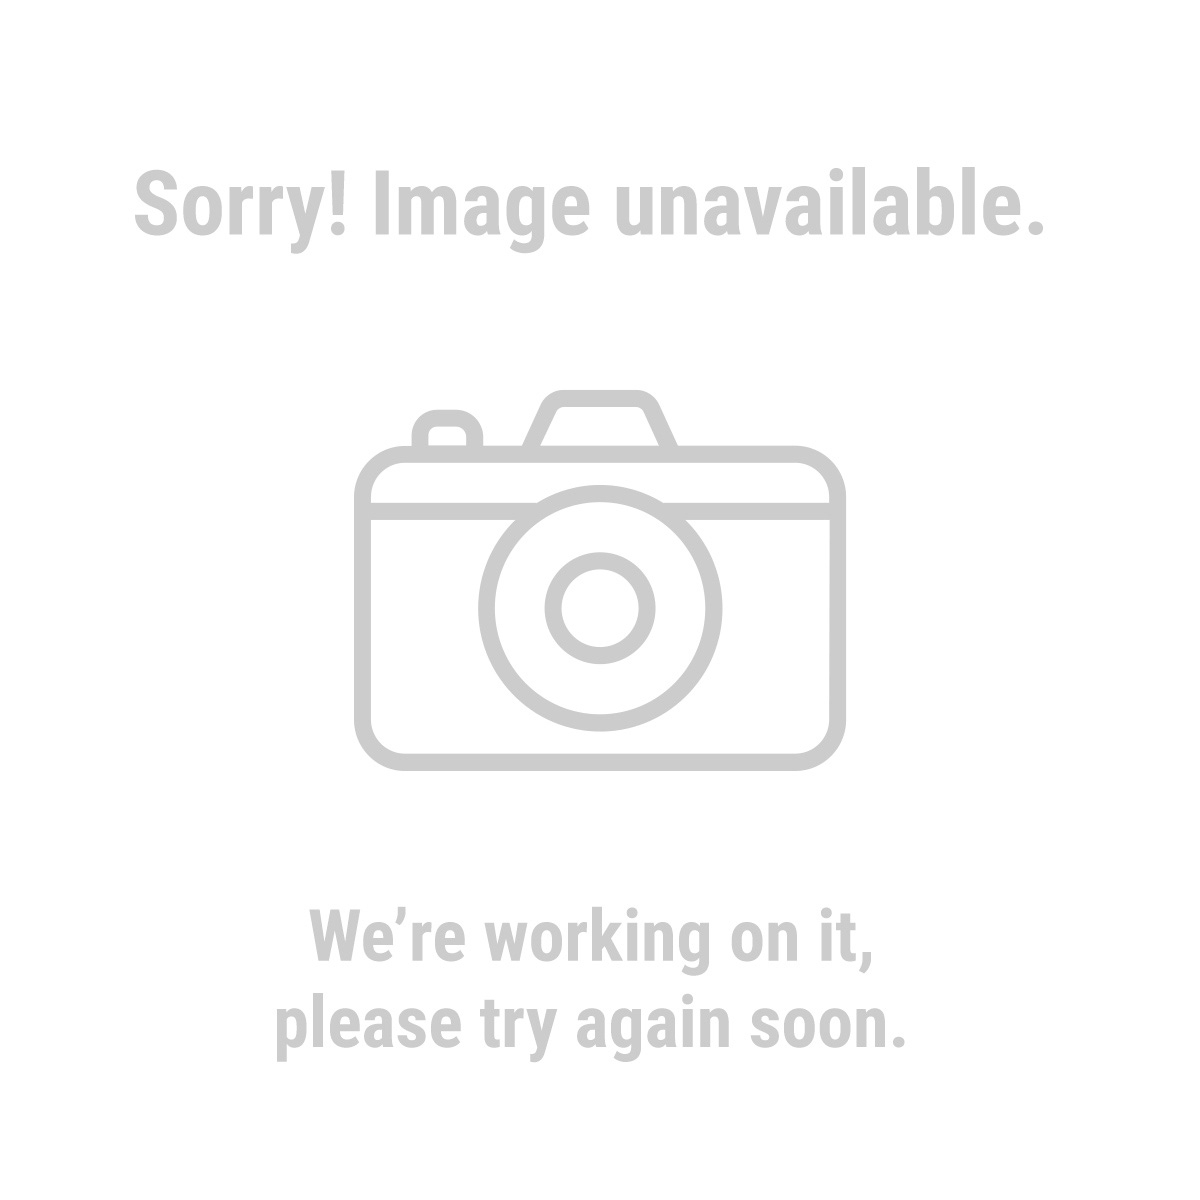 47523 5 Gallon Bucket, White